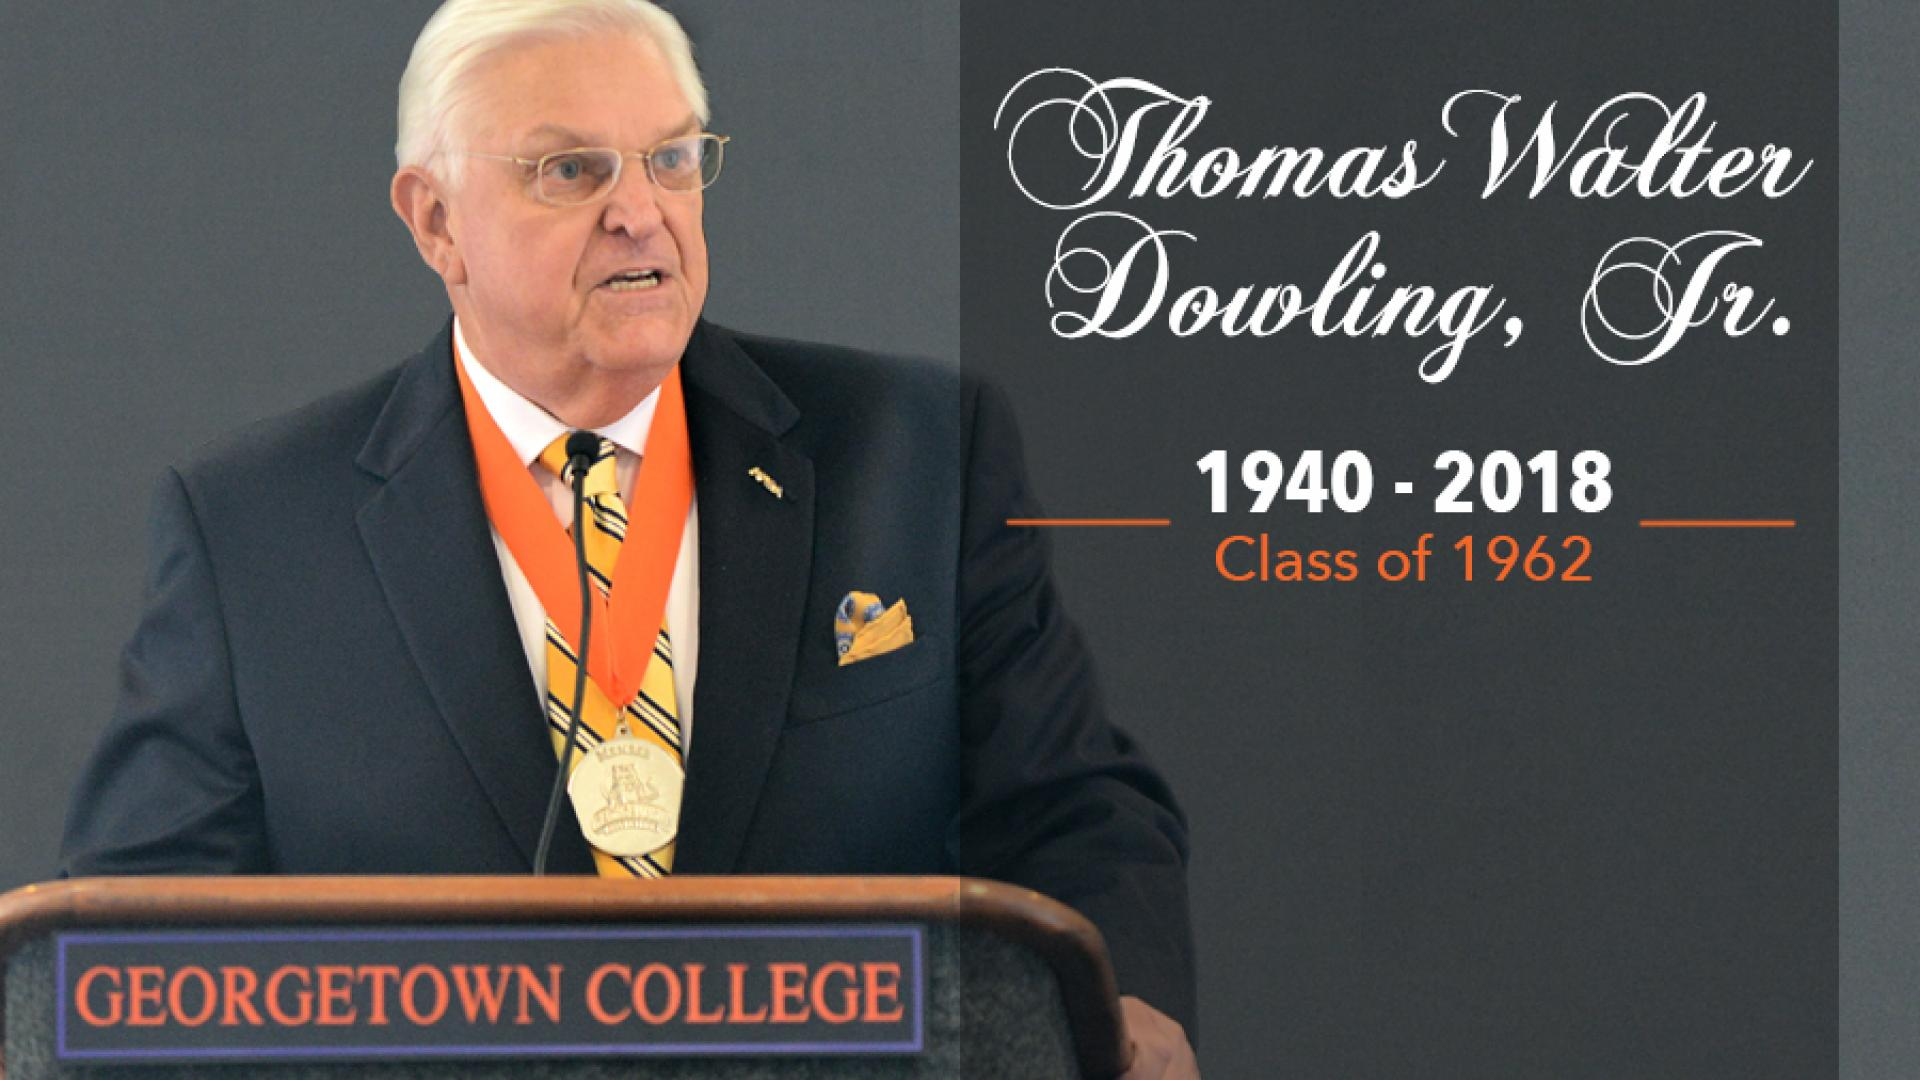 Funeral, Celebration of Life for Coach Dowling